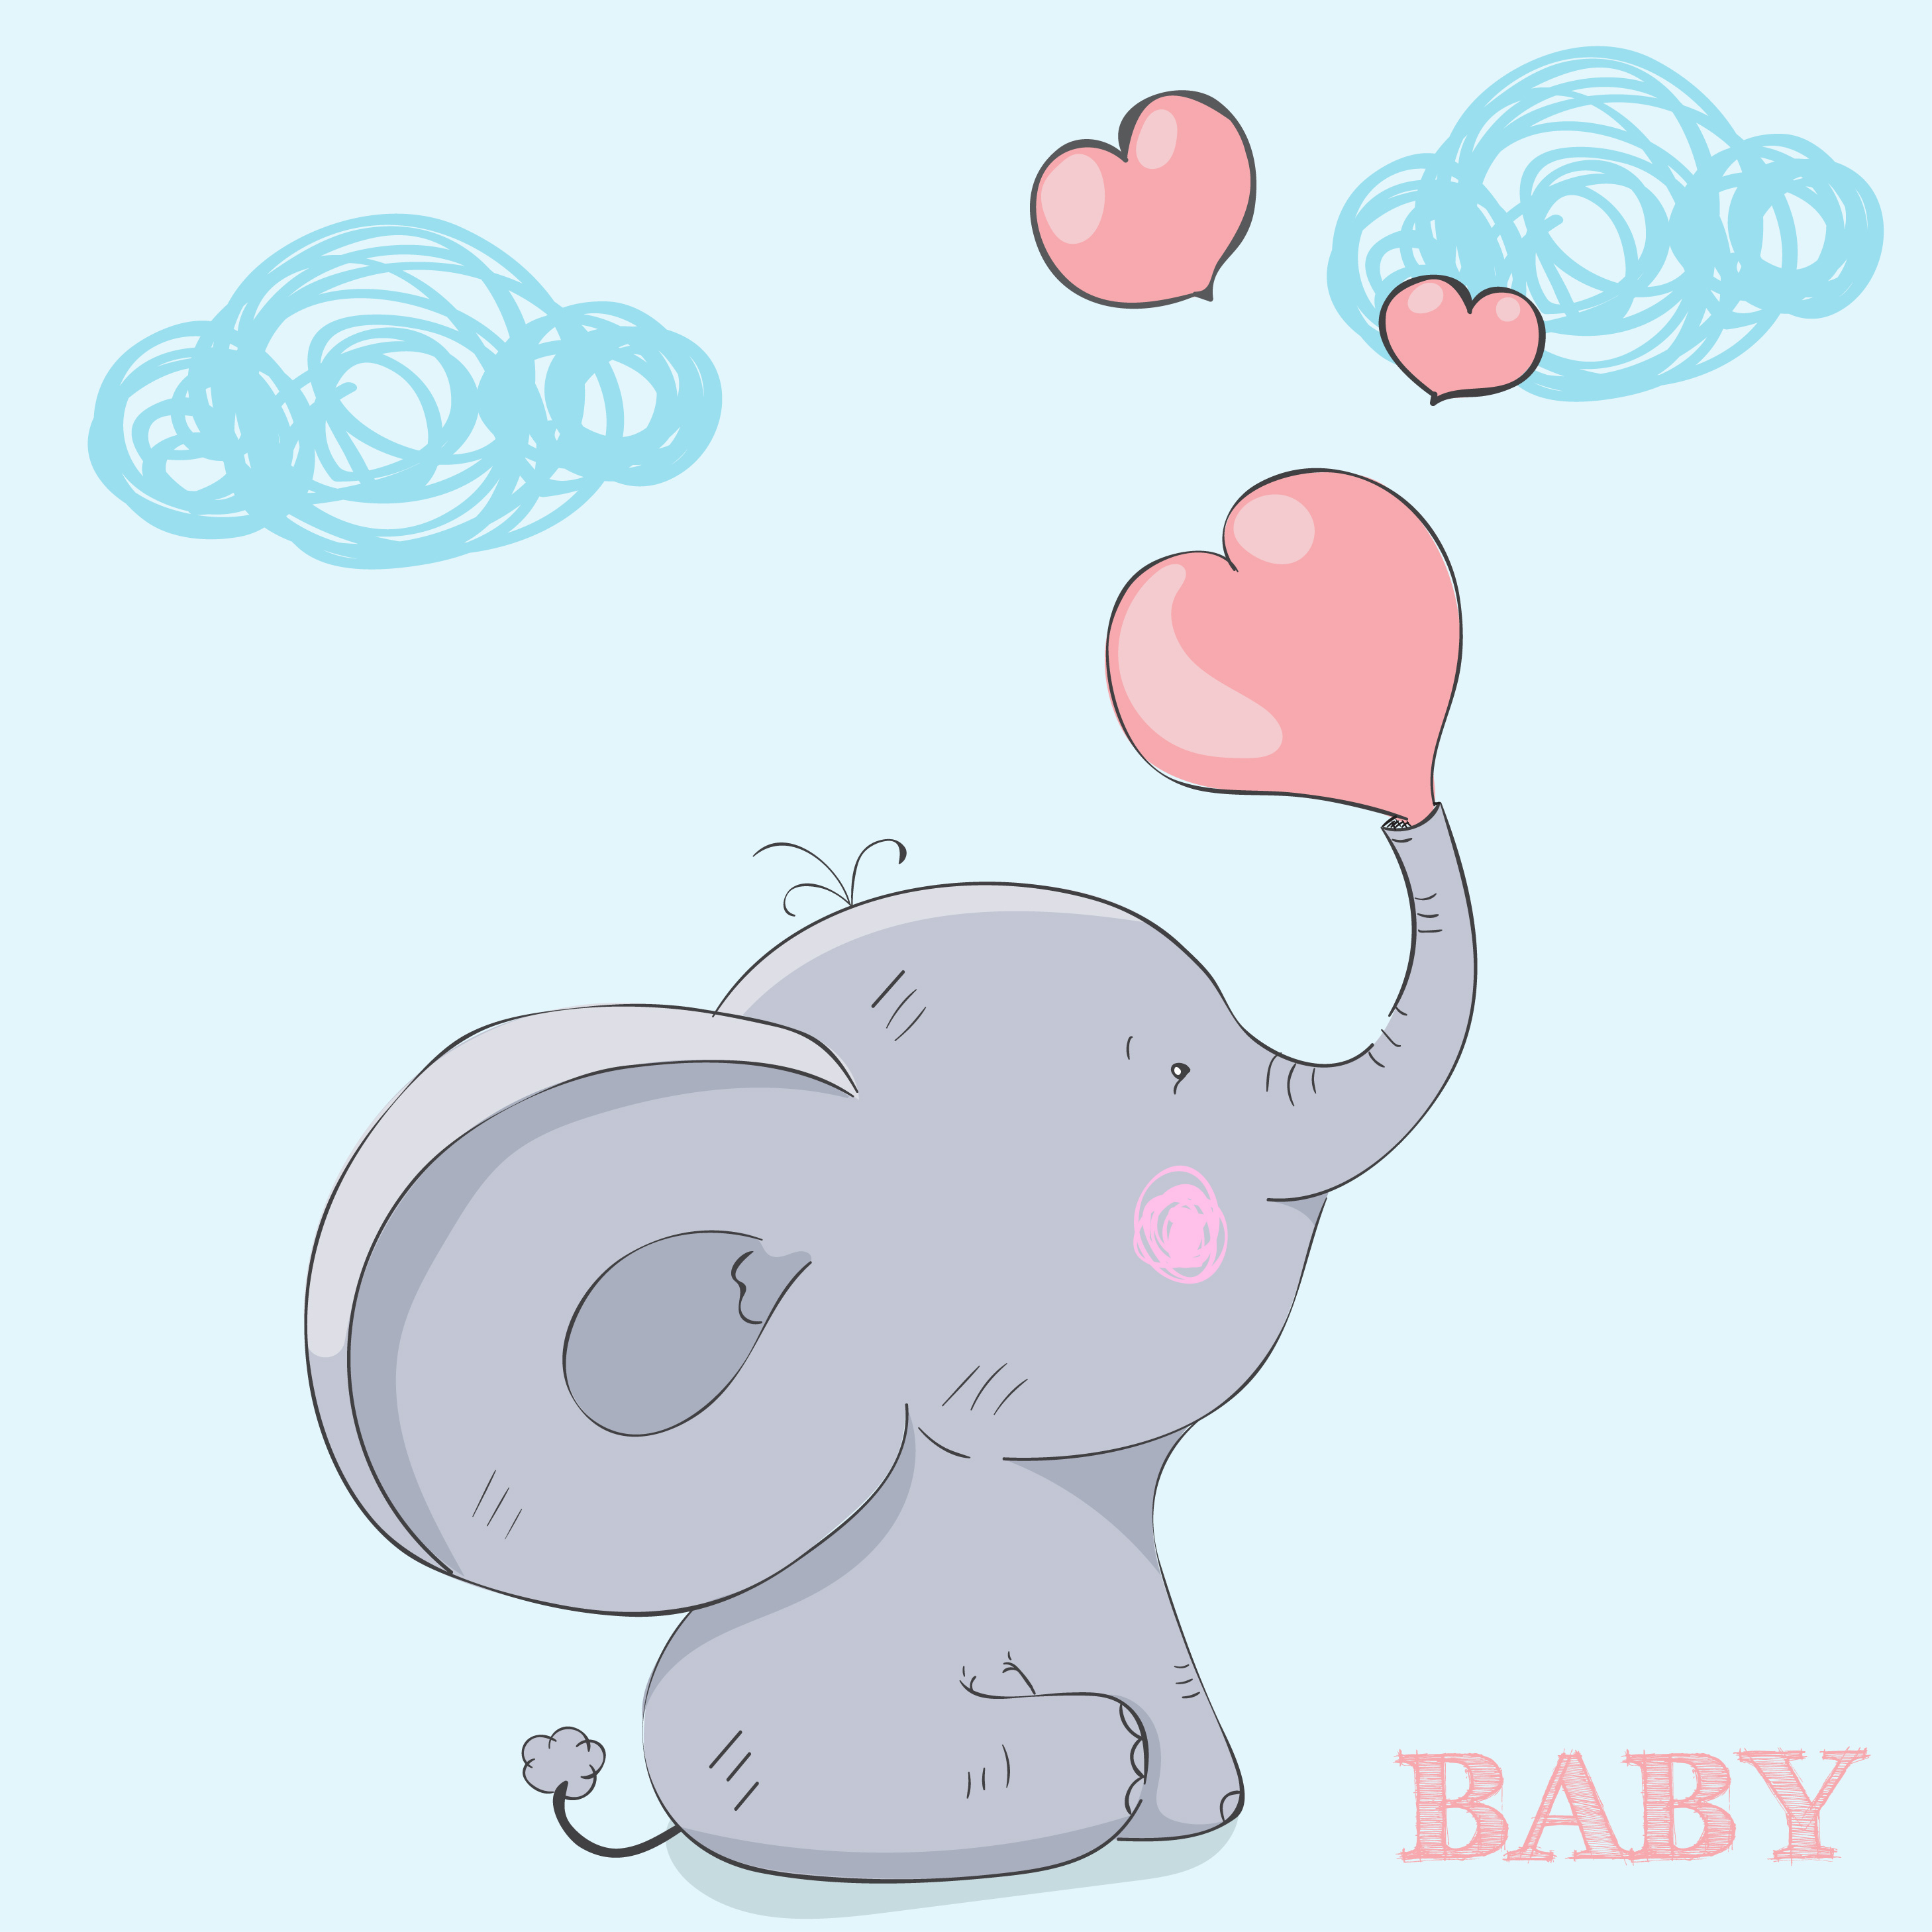 Cute Little Baby Elephant Download Free Vectors Clipart